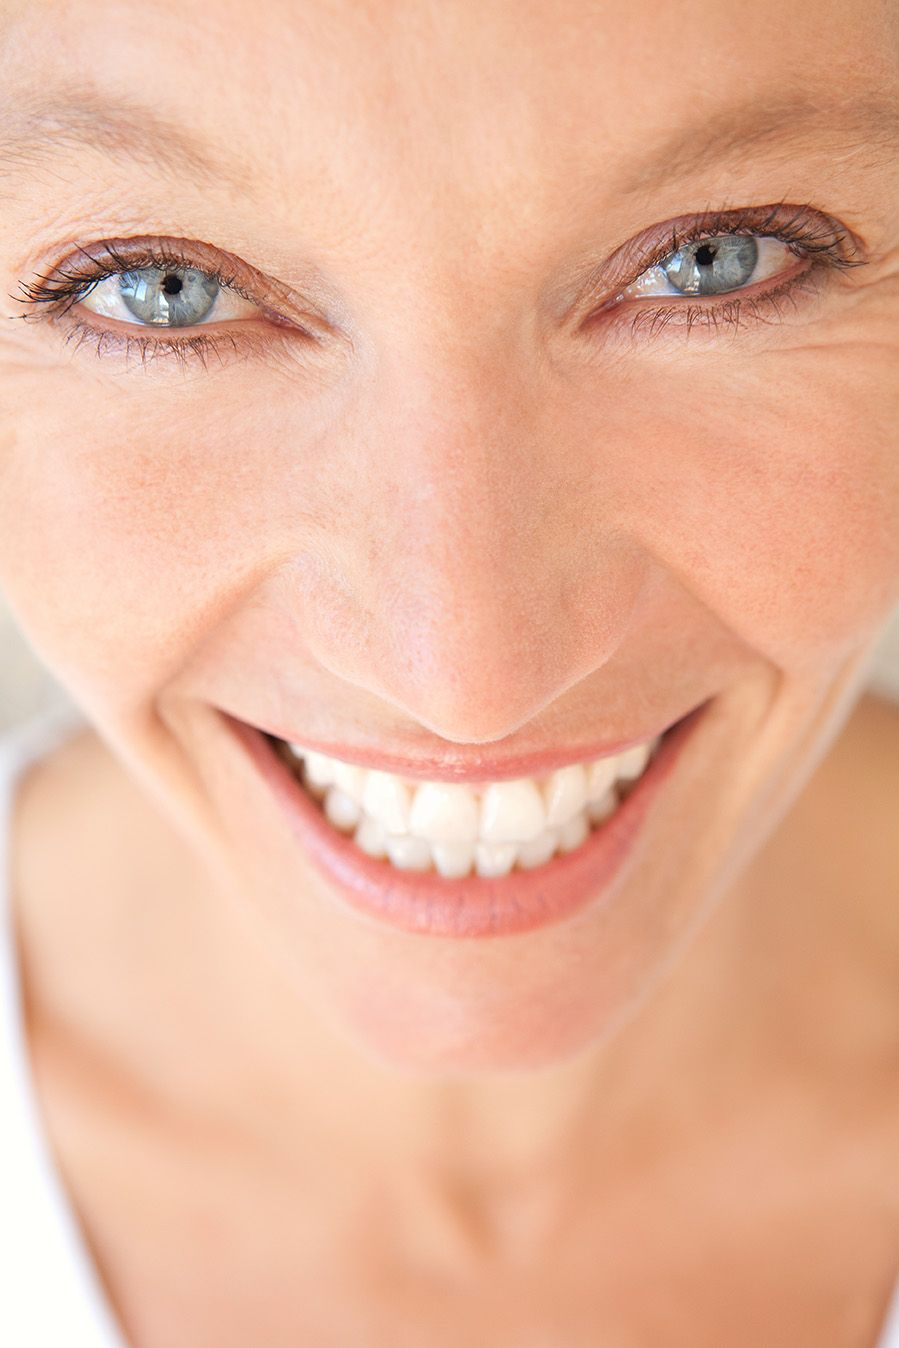 Woman close up smile